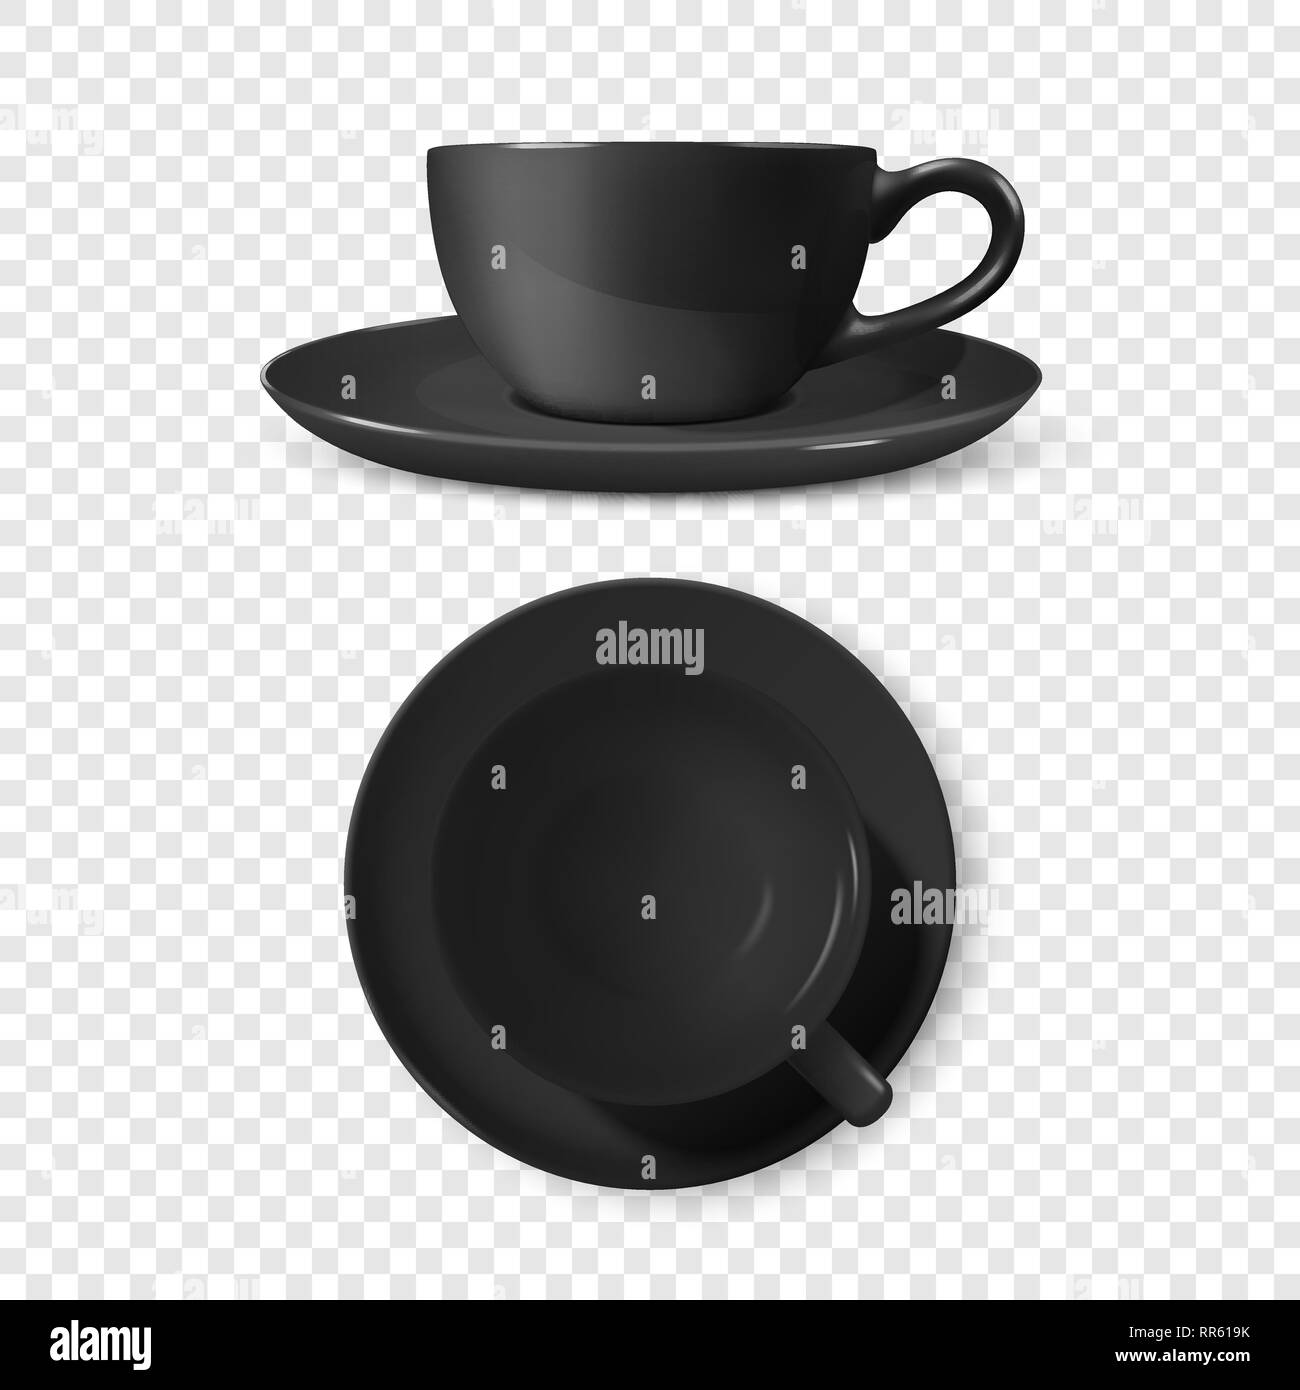 Realistic Vector 3d Glossy Blank Black Coffee Tea Cup Mug Set Closeup Isolated Design Template Of Porcelain Cup Or Mug And Saucer Plate For Branding Stock Vector Image Art Alamy